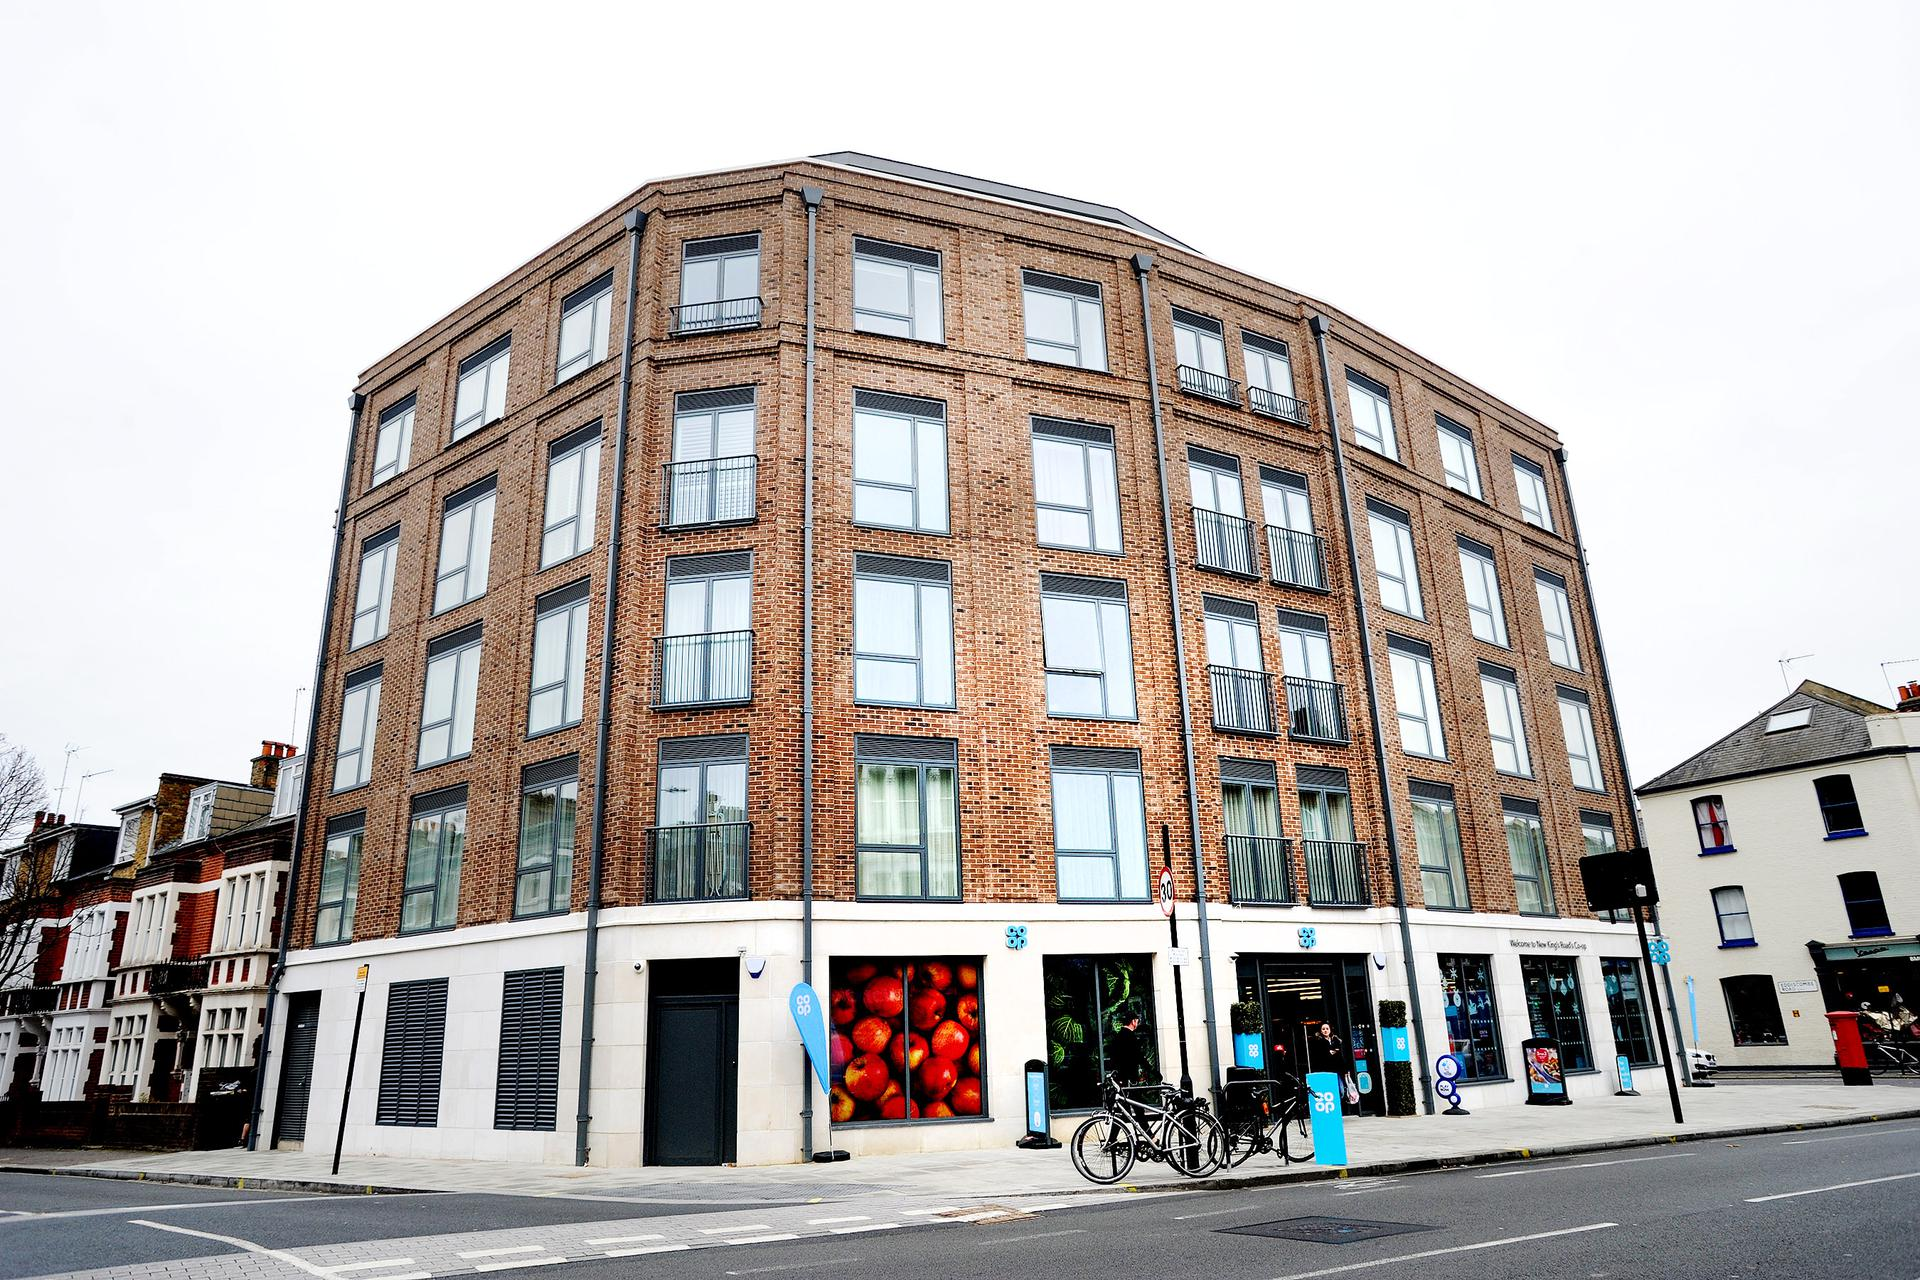 A photograph of New Kings Road - Fulham